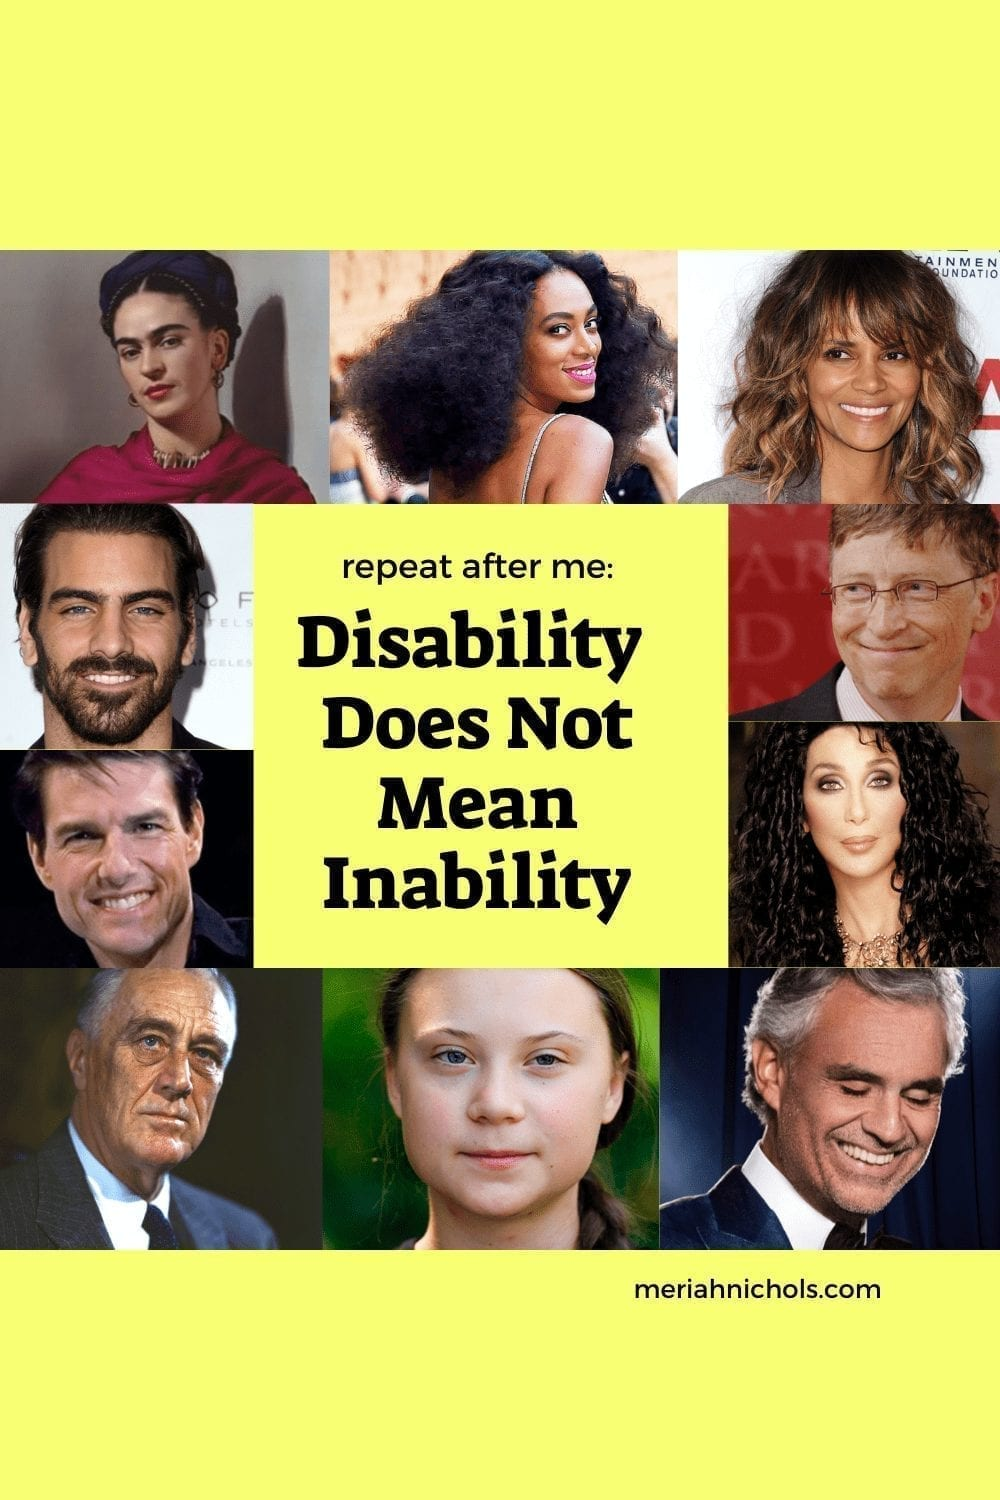 """disability does not mean inability [image description: images of famous people with disabilities frame the central text that says, """"repeat after me: disability does not mean inability"""" - the famous people are, L-R, frida kahlo, solange knowles, halle berry, bill gates, cher, andrea bocelli, greta thunberg, FDR, tom cruise, nyle dimarco]"""